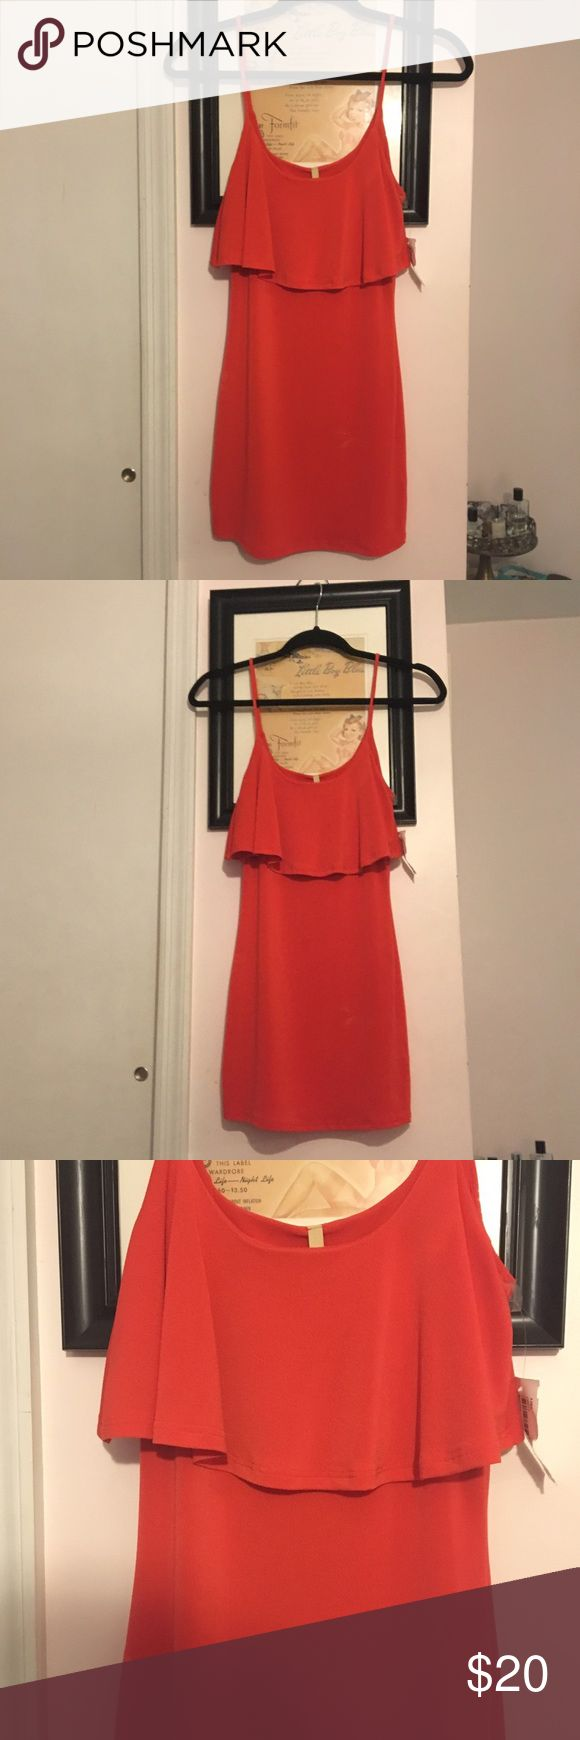 Cute Red dress size small new with tags New with tags red dress from mystic boutique never worn size small mystic boutique Dresses